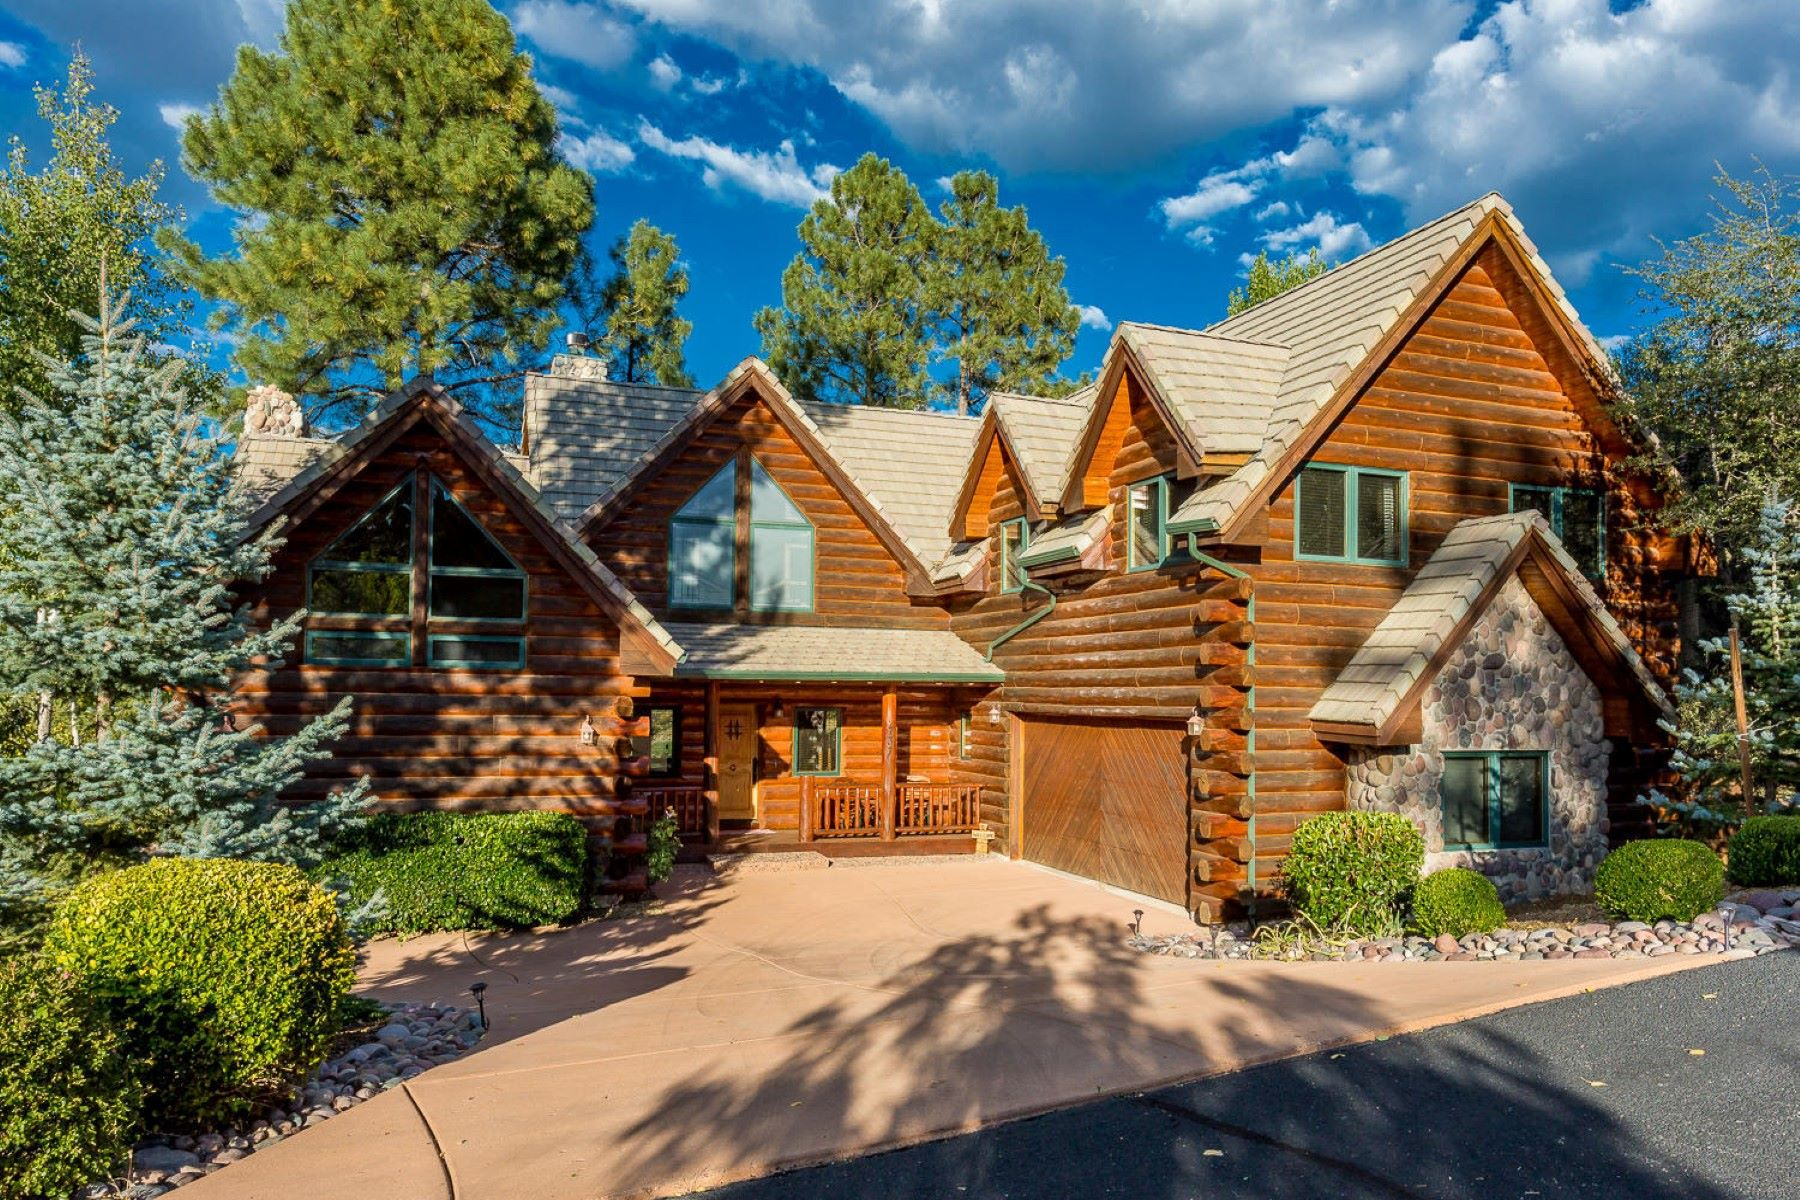 Casa Unifamiliar por un Venta en Stunning Log Home 737 Crosscreek Drive Prescott, Arizona 86303 Estados Unidos